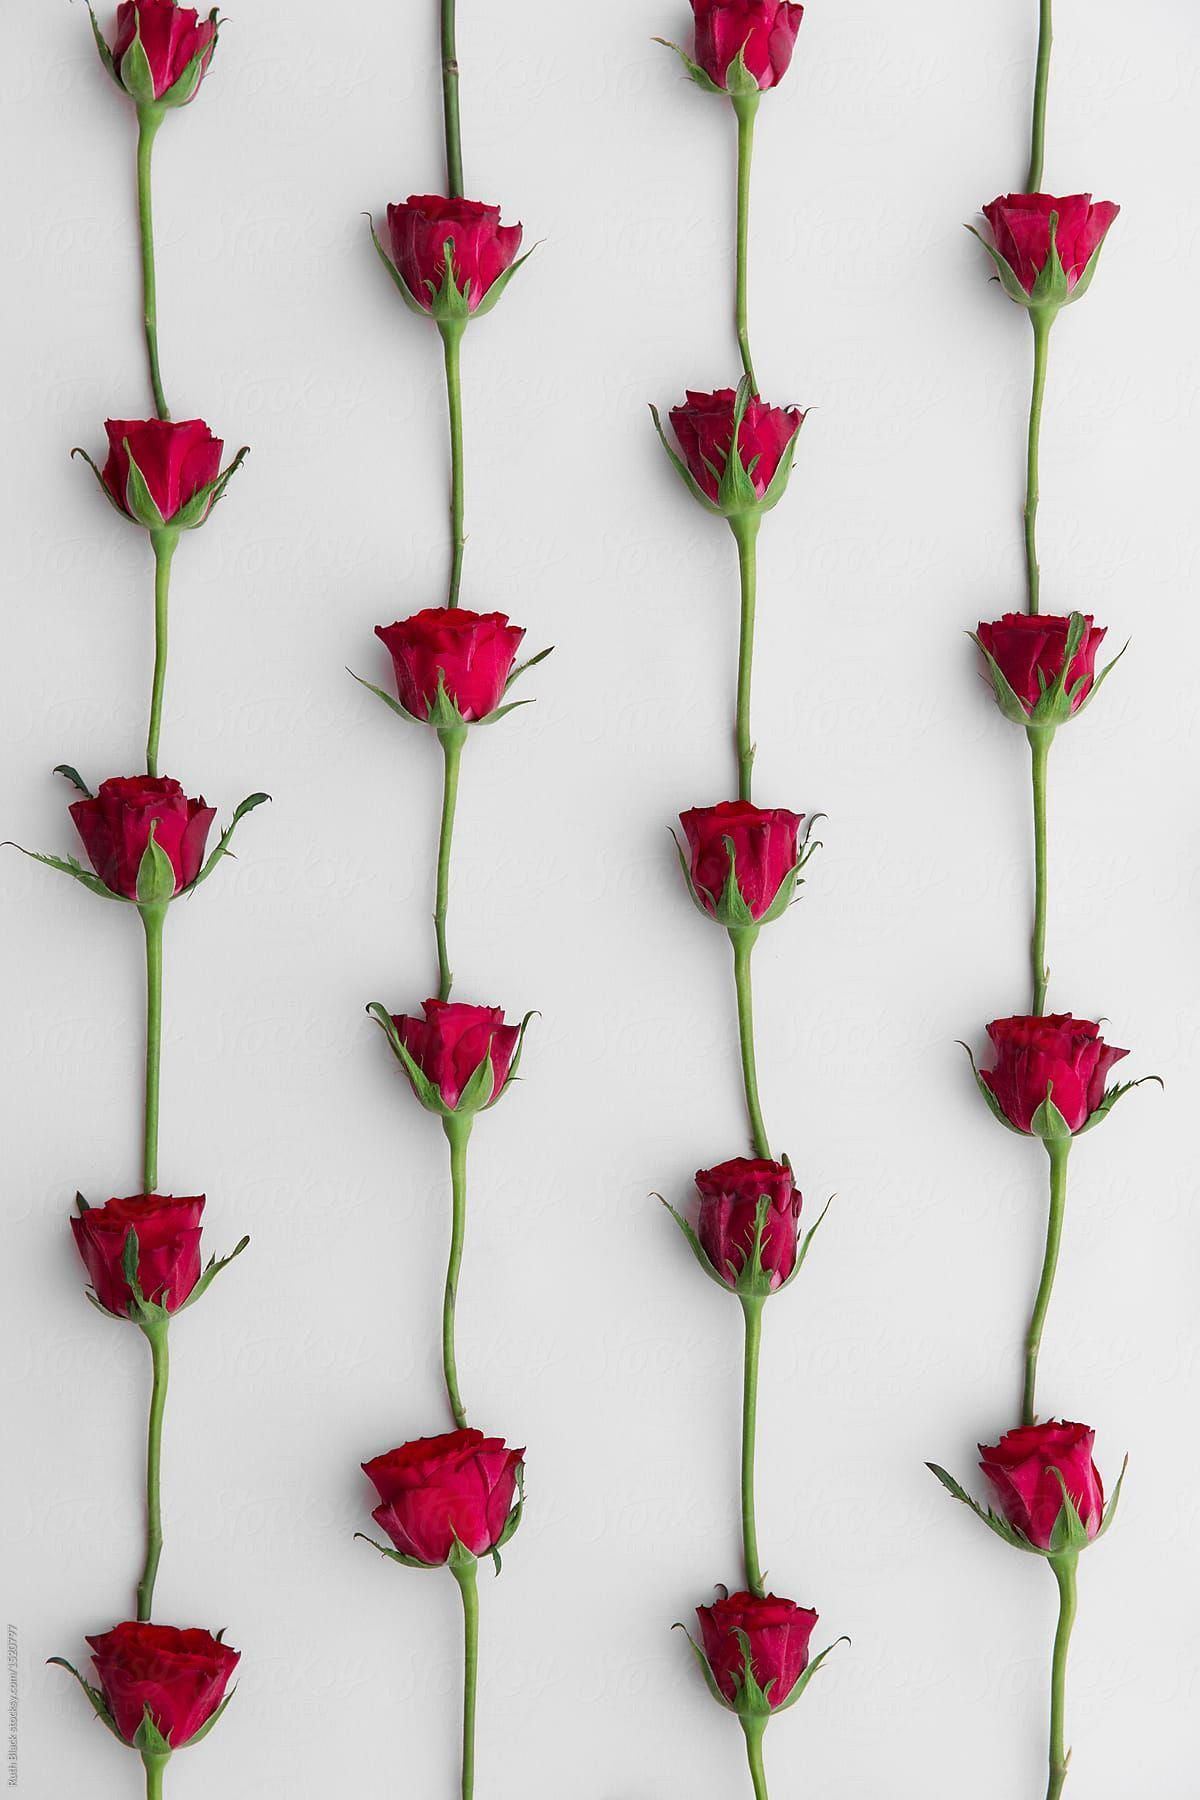 Red Rose Background Download This High Resolution Stock Photo By